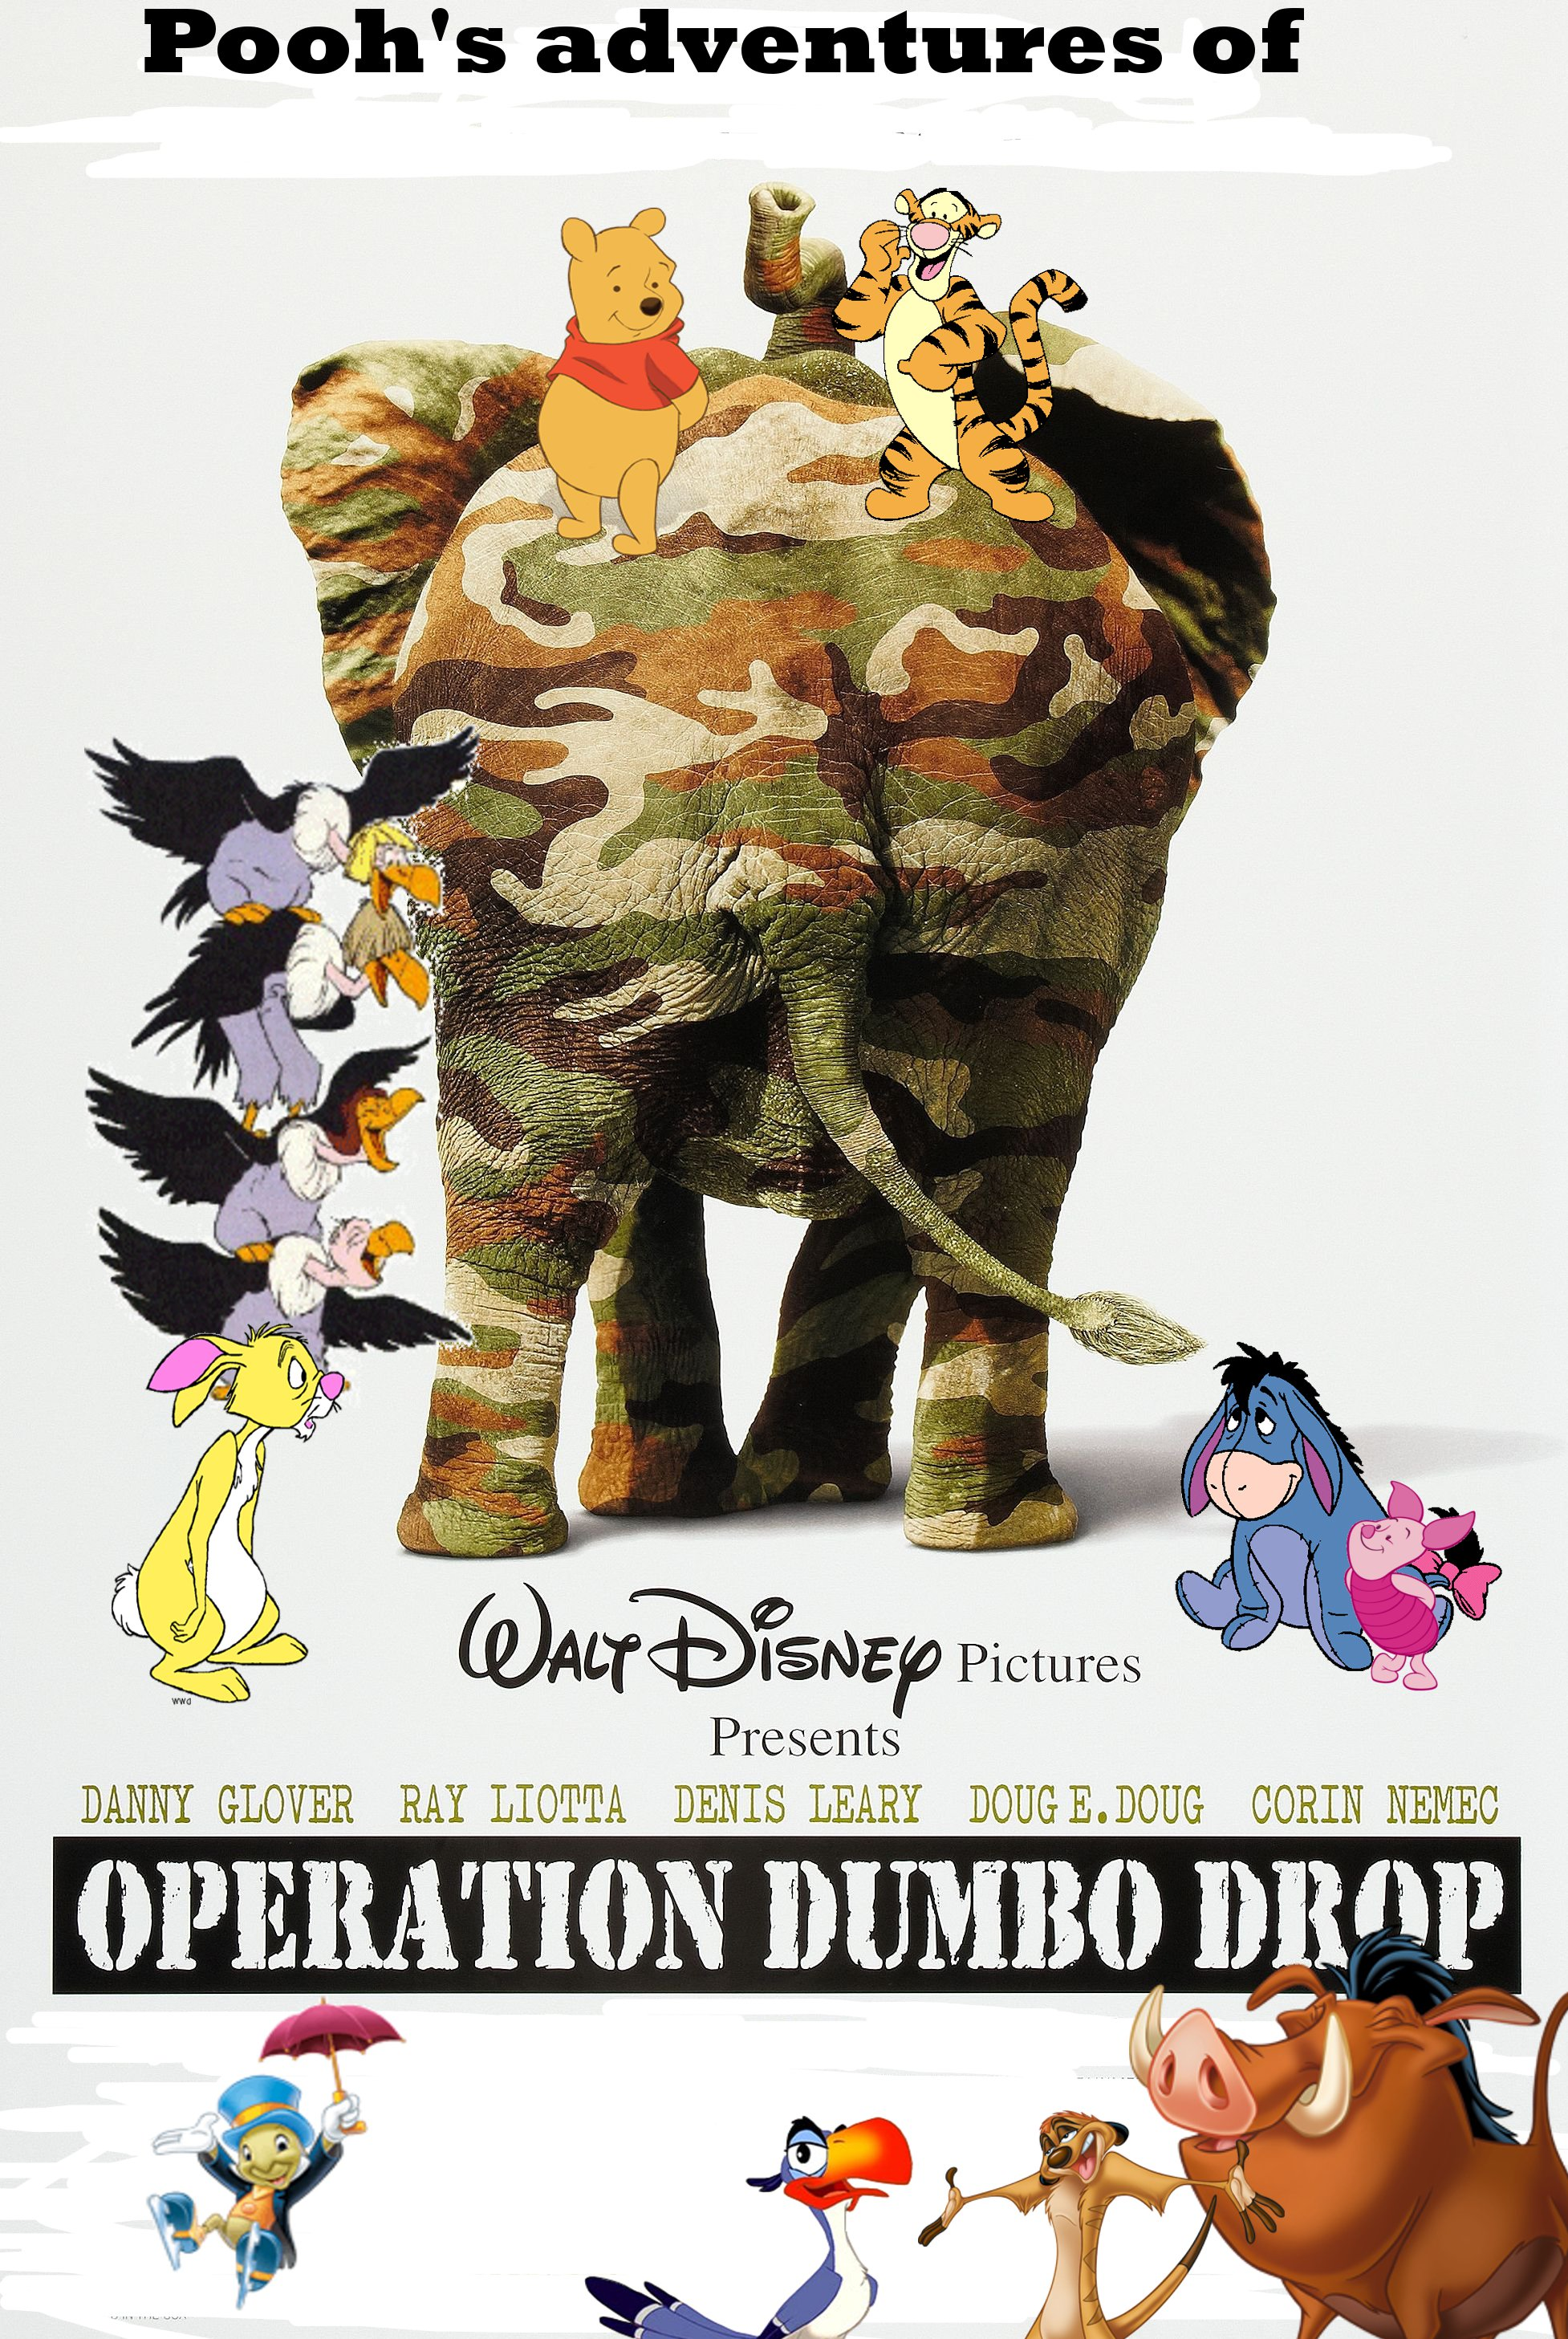 Pooh's adventures of Operation Dumbo Drop